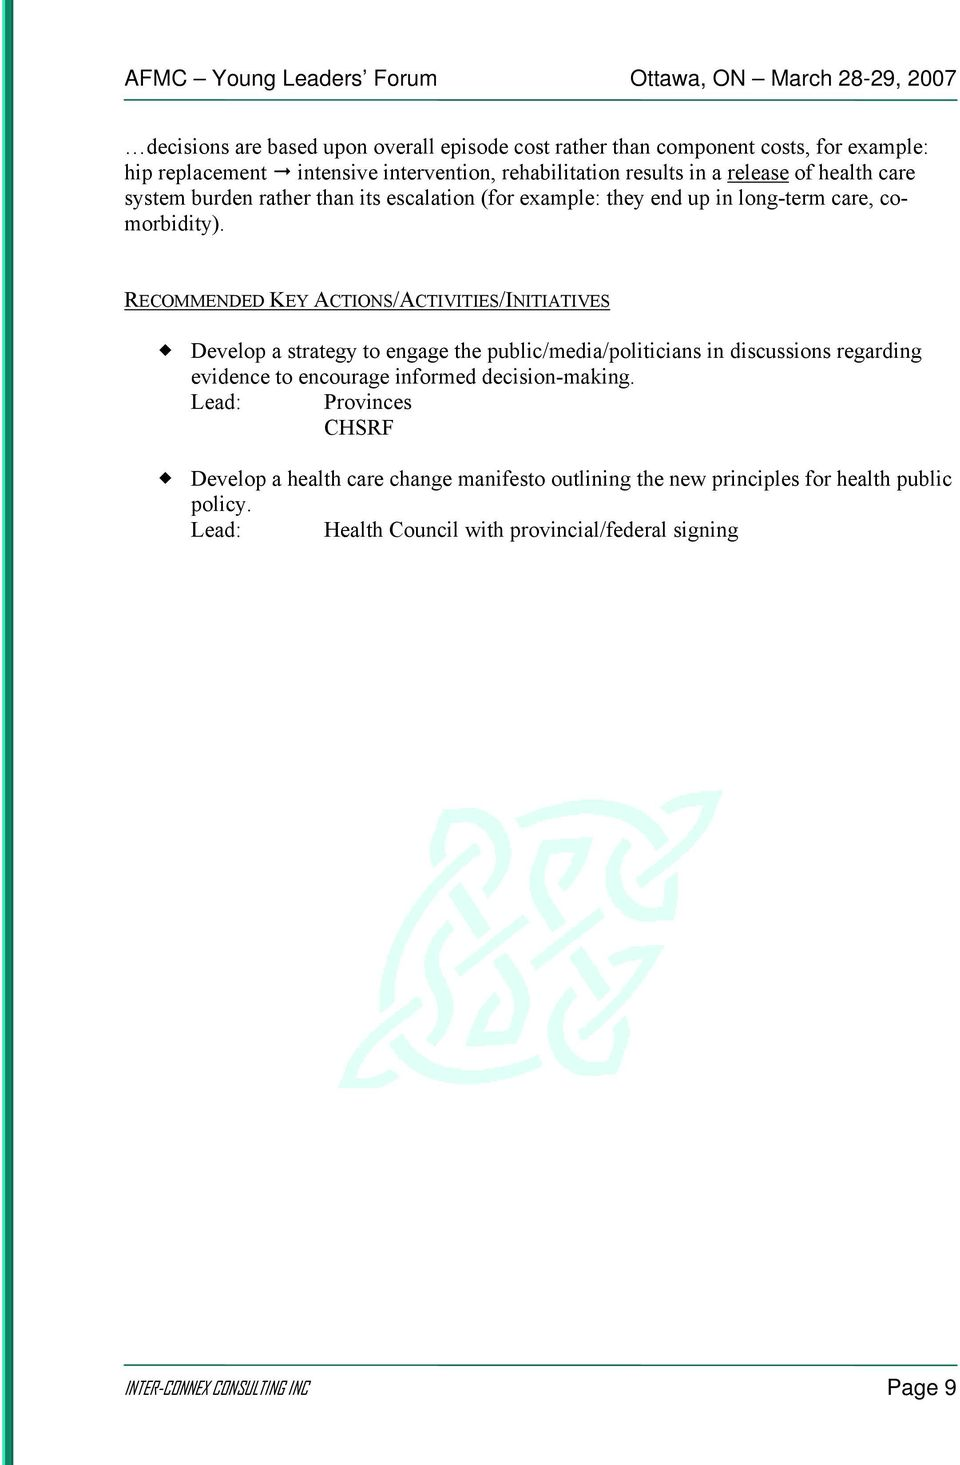 RECOMMENDED KEY ACTIONS/ACTIVITIES/INITIATIVES Develop a strategy to engage the public/media/politicians in discussions regarding evidence to encourage informed